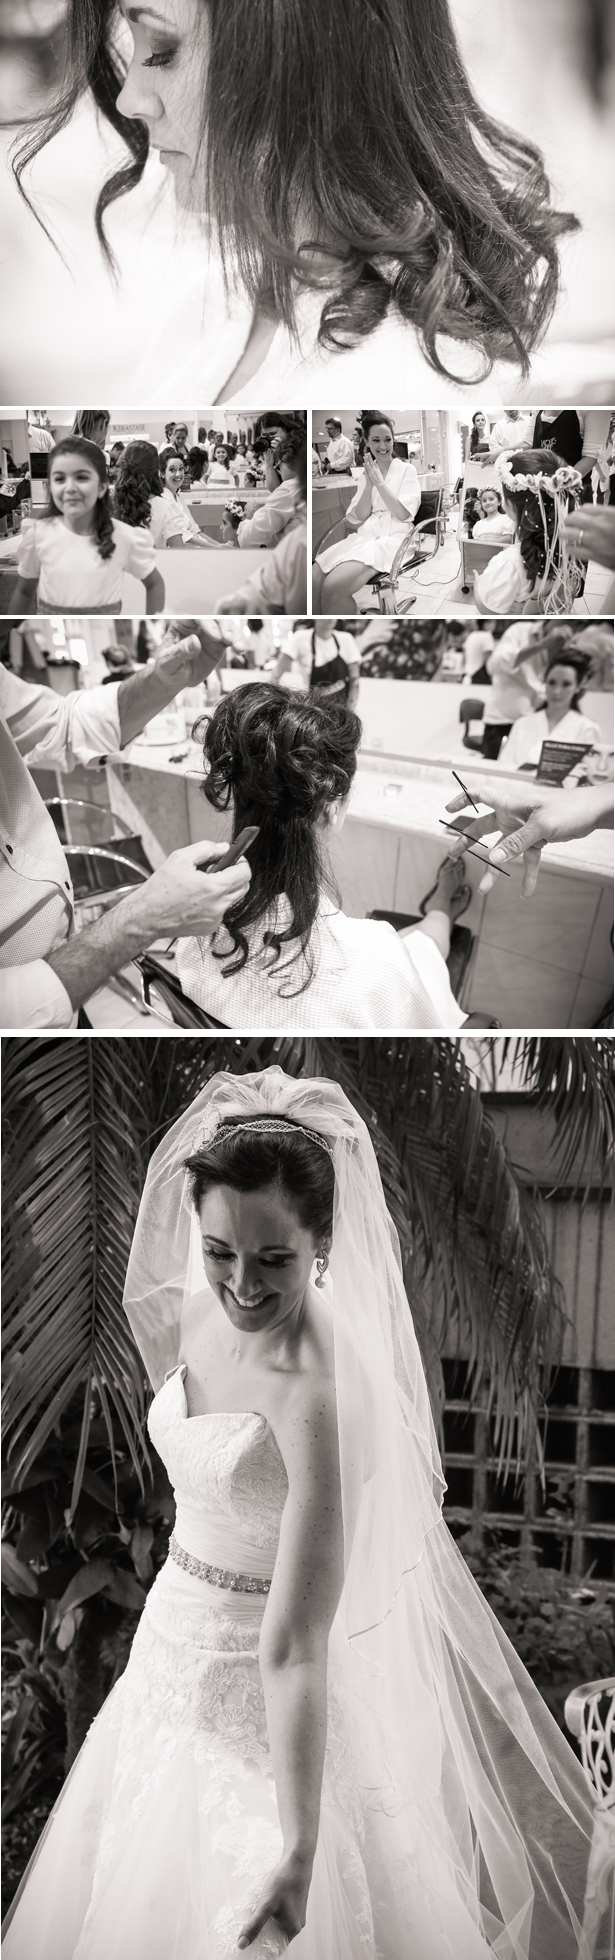 The bride getting ready at a salon with her bridal party |Claudia and Felipe's Intiamte Wedding